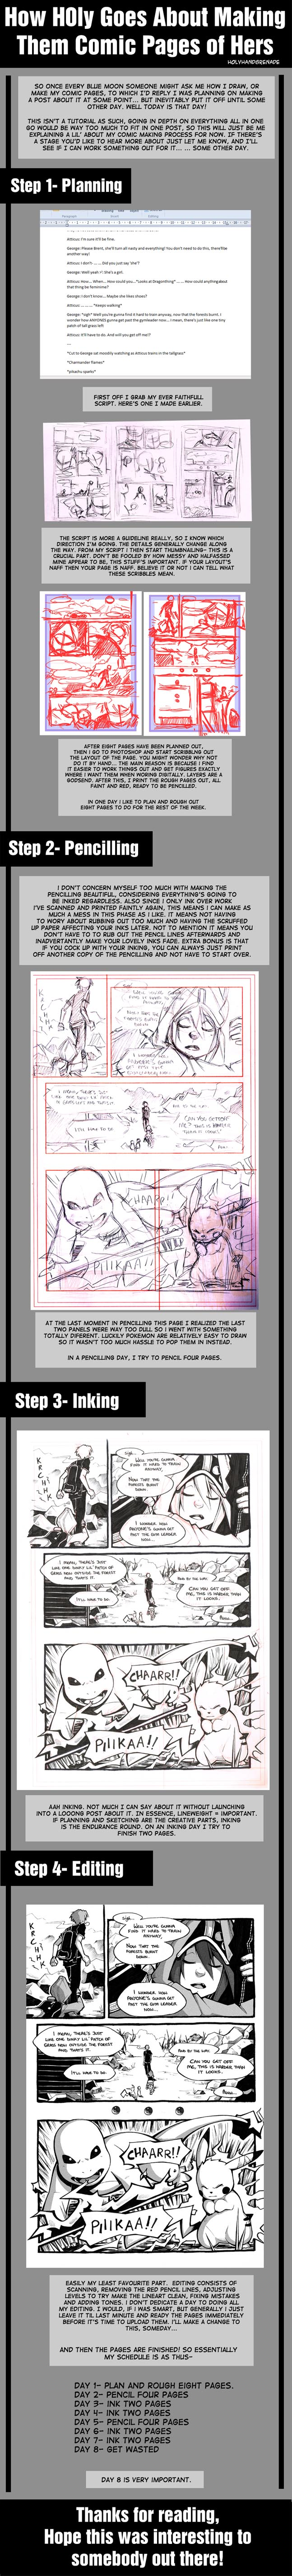 H0ly's Comic Making Process by H0lyhandgrenade